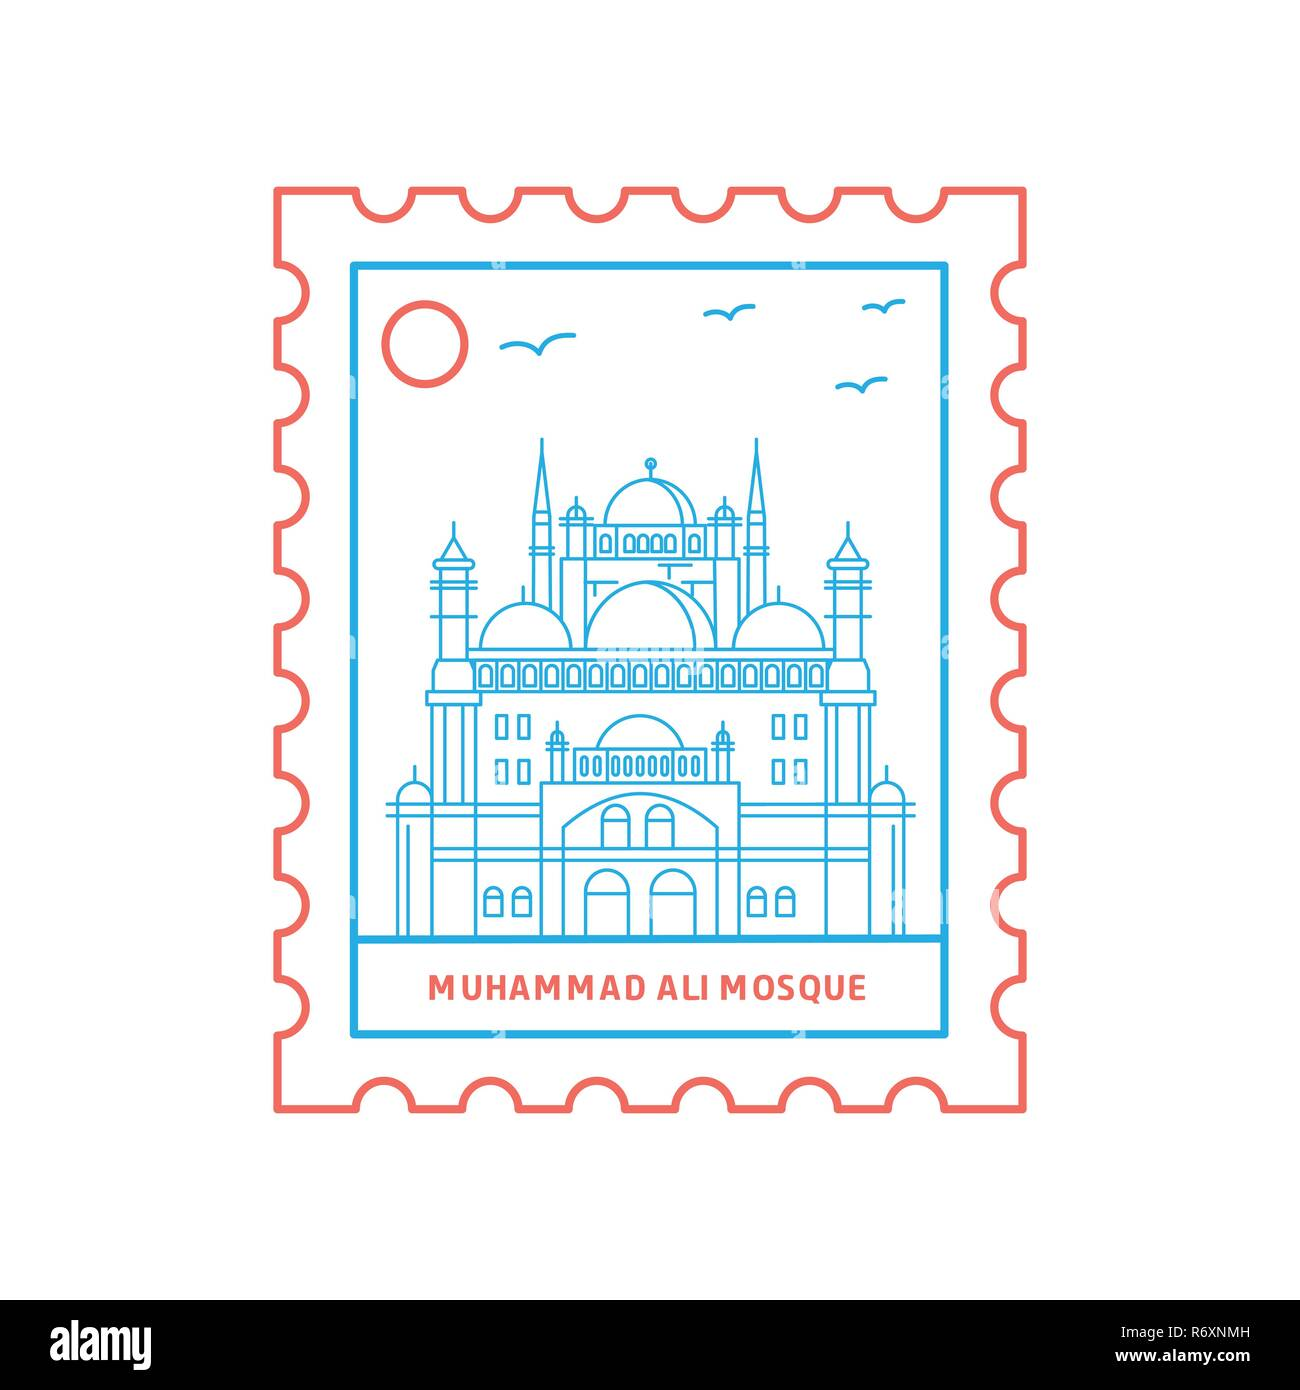 MUHAMMAD ALI MOSQUE postage stamp Blue and red Line Style, vector illustration - Stock Image